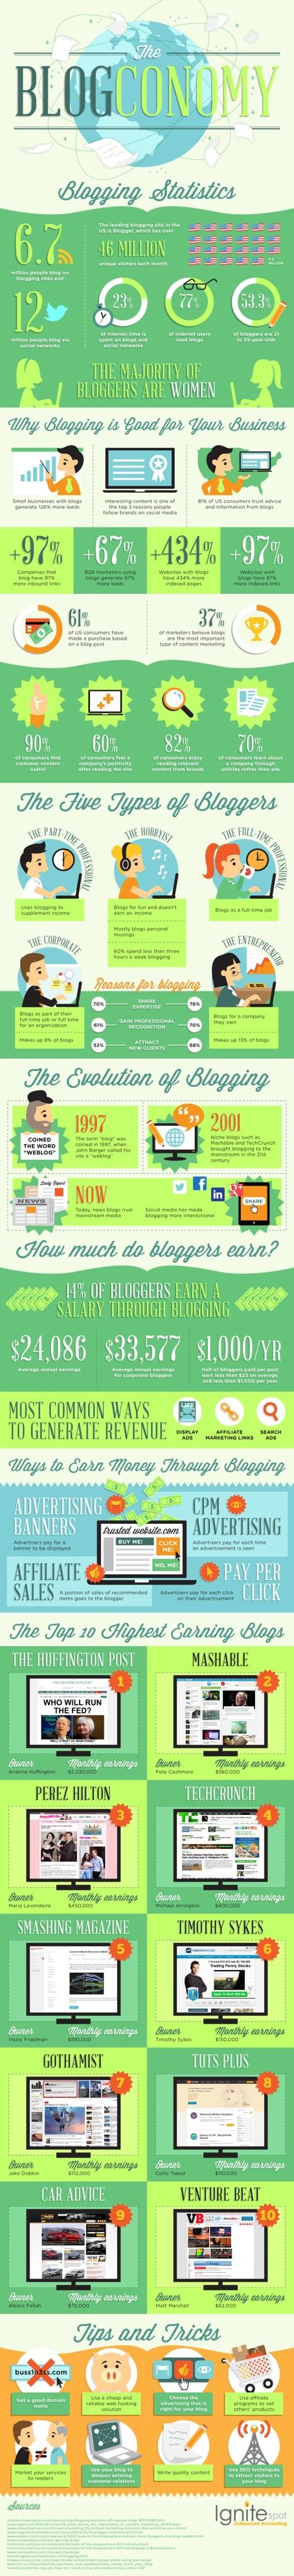 Infographic: The Blogconomy and Blogging Stats | technology | Scoop.it